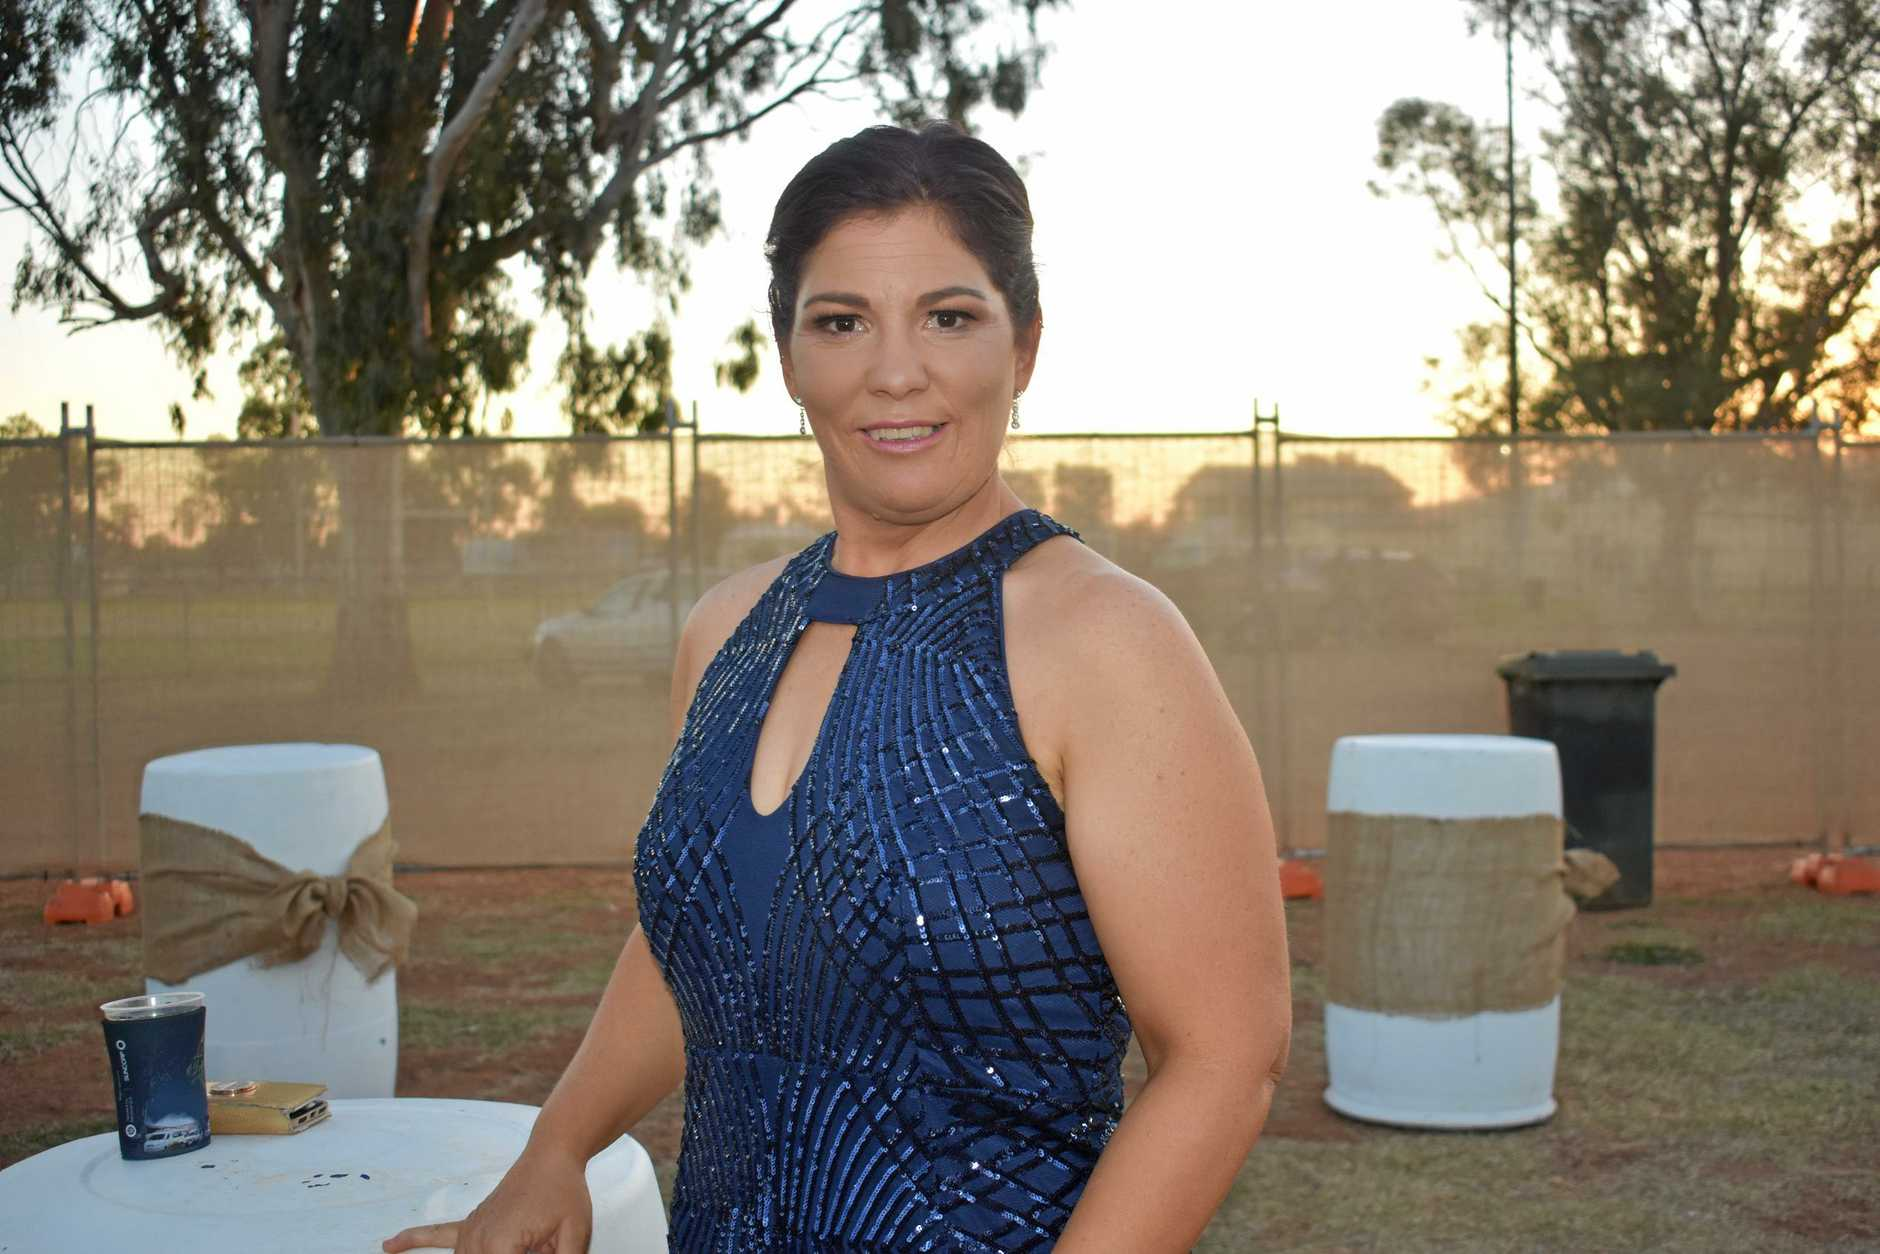 RECOGNITION: Ambulance superintendent Loretta Johnson has been named as one of the three finalists for Queensland Rural, Regional and Remote Women's Network's Woman of the Year.